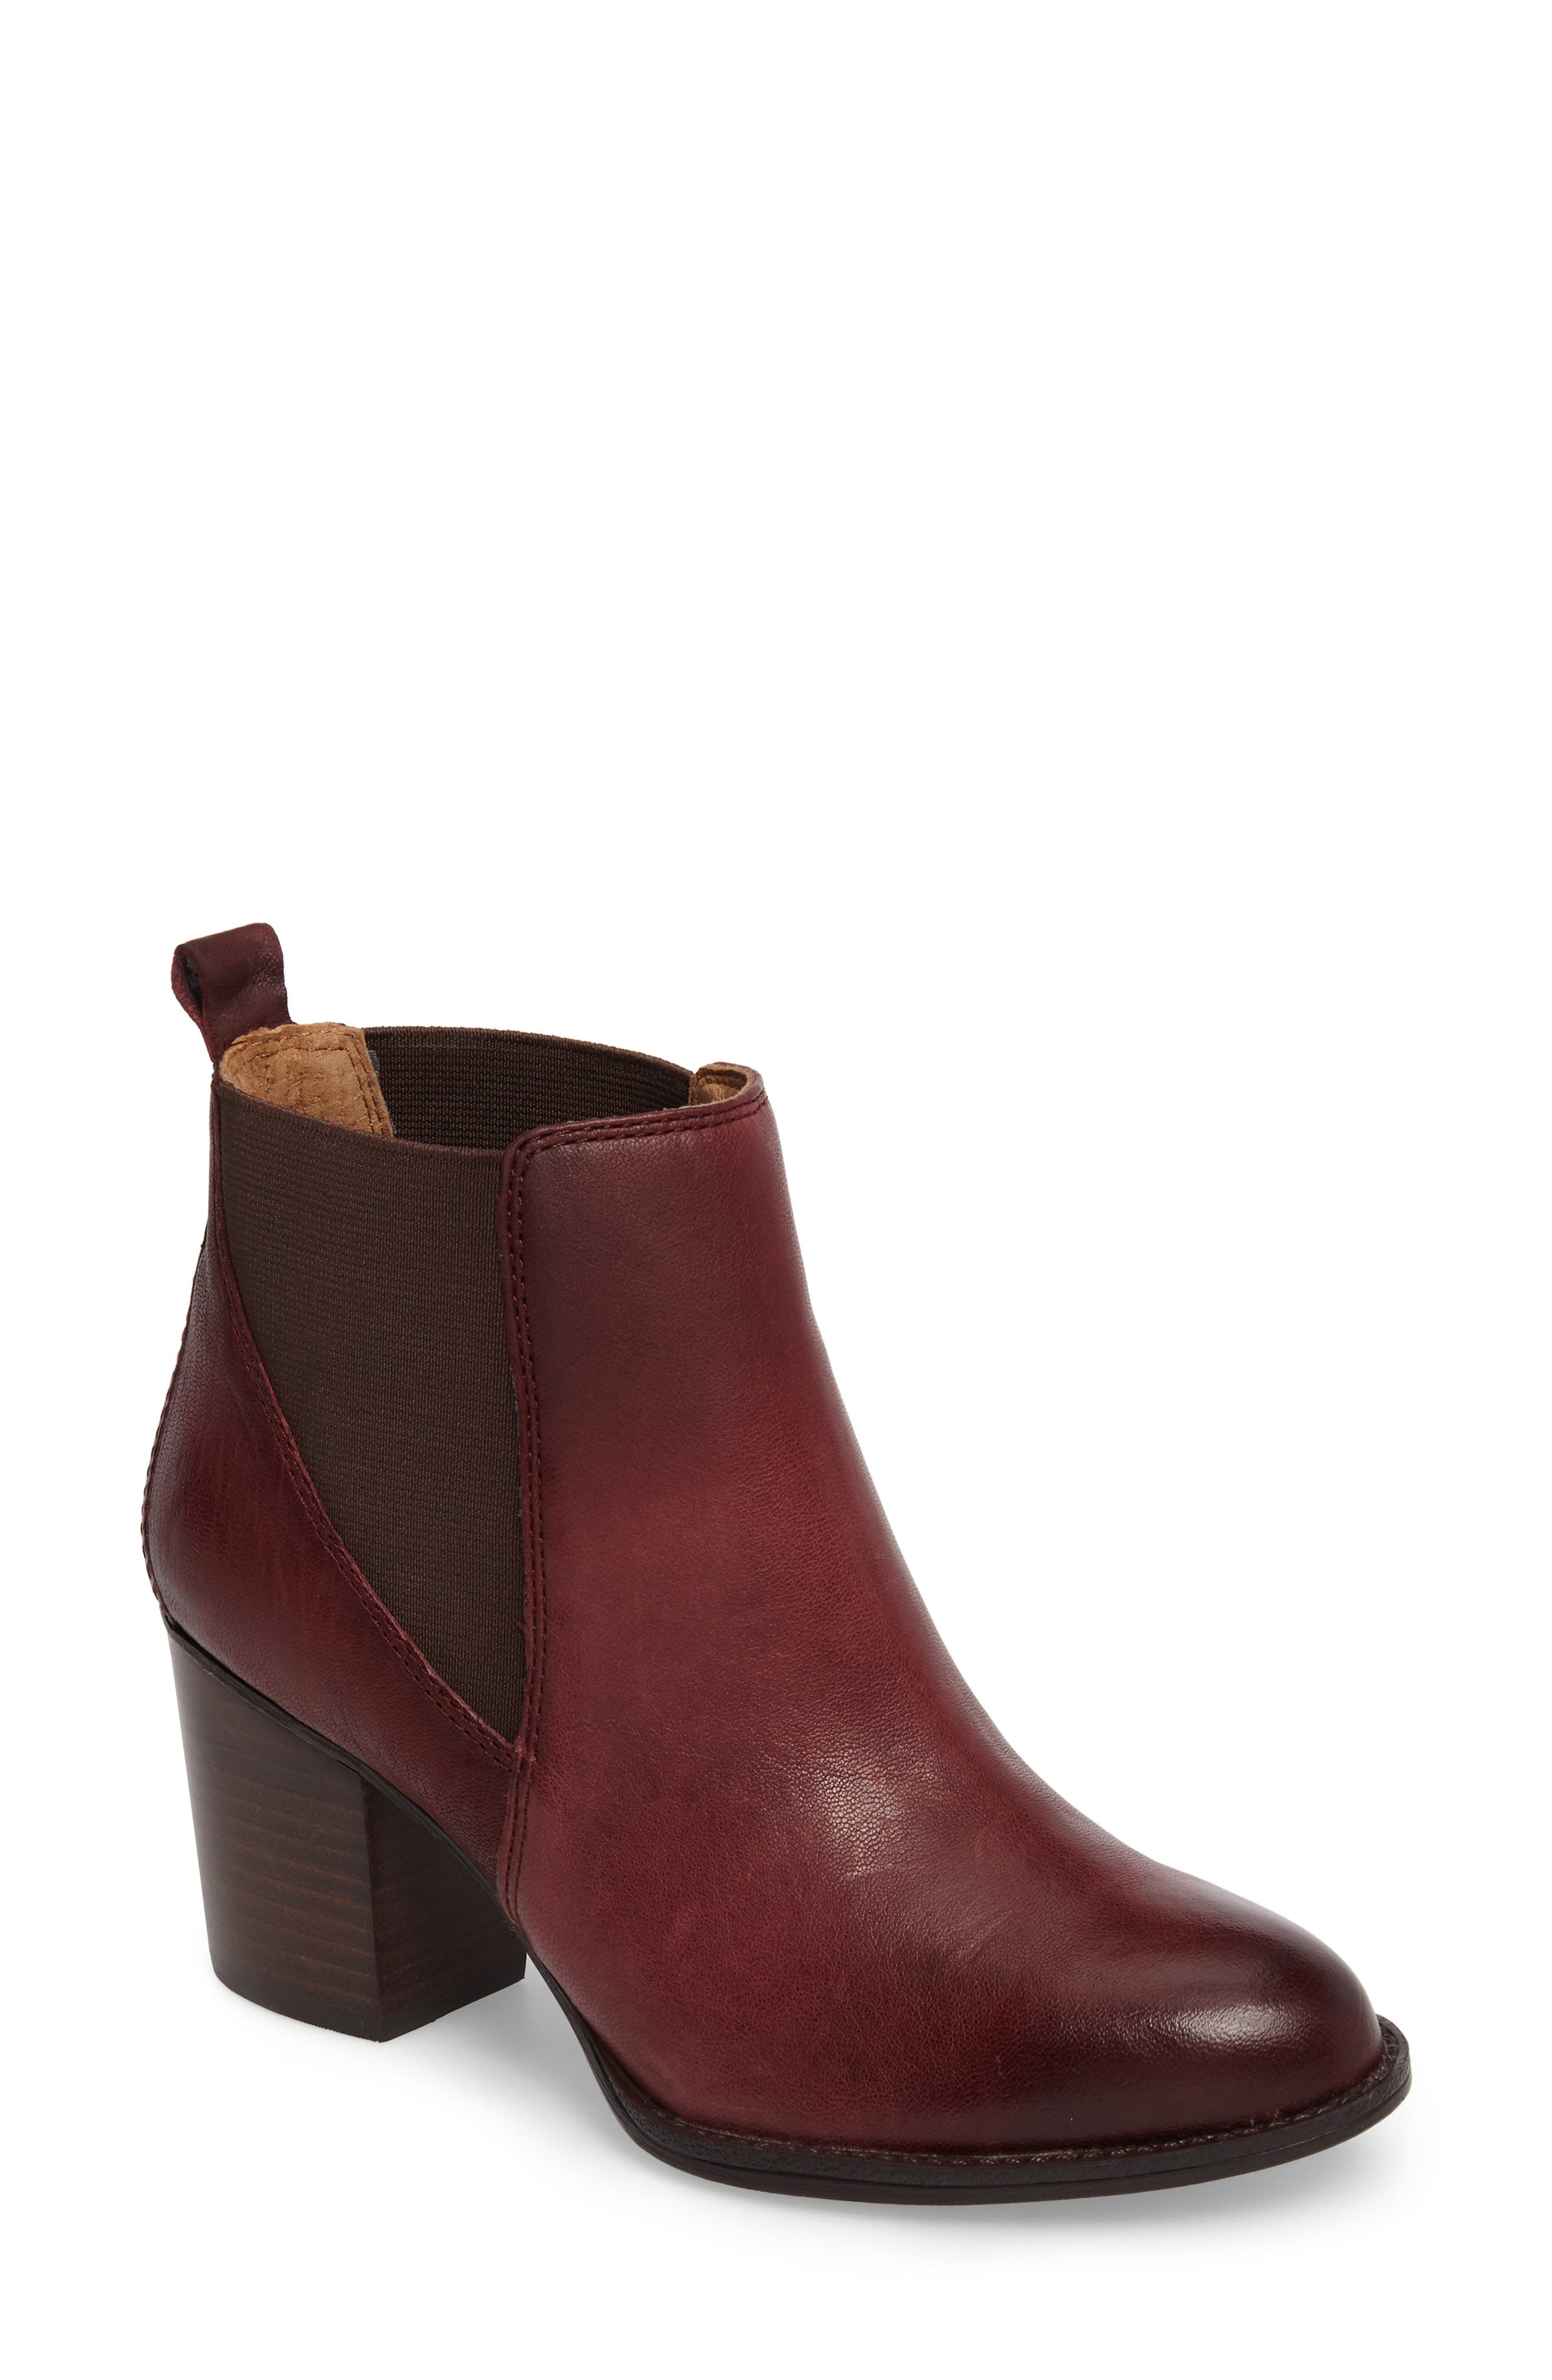 Welling Bootie,                             Main thumbnail 1, color,                             WINE RED LEATHER